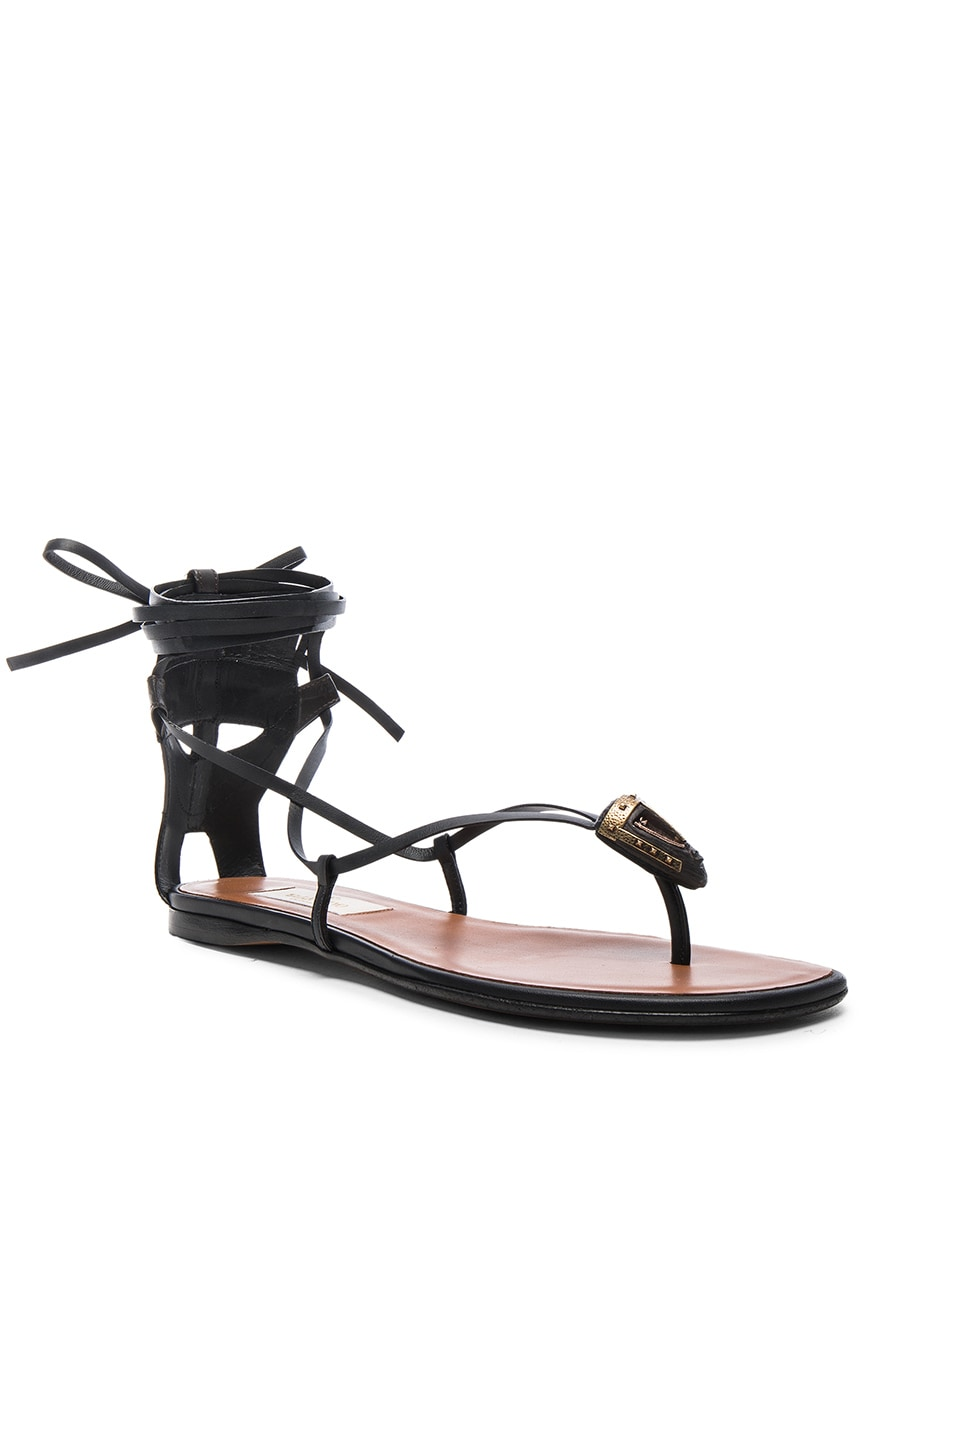 3ba548d8f6c Image 2 of Valentino Tribe Gladiator Leather Flat Sandals in Black   Deep  Ebano